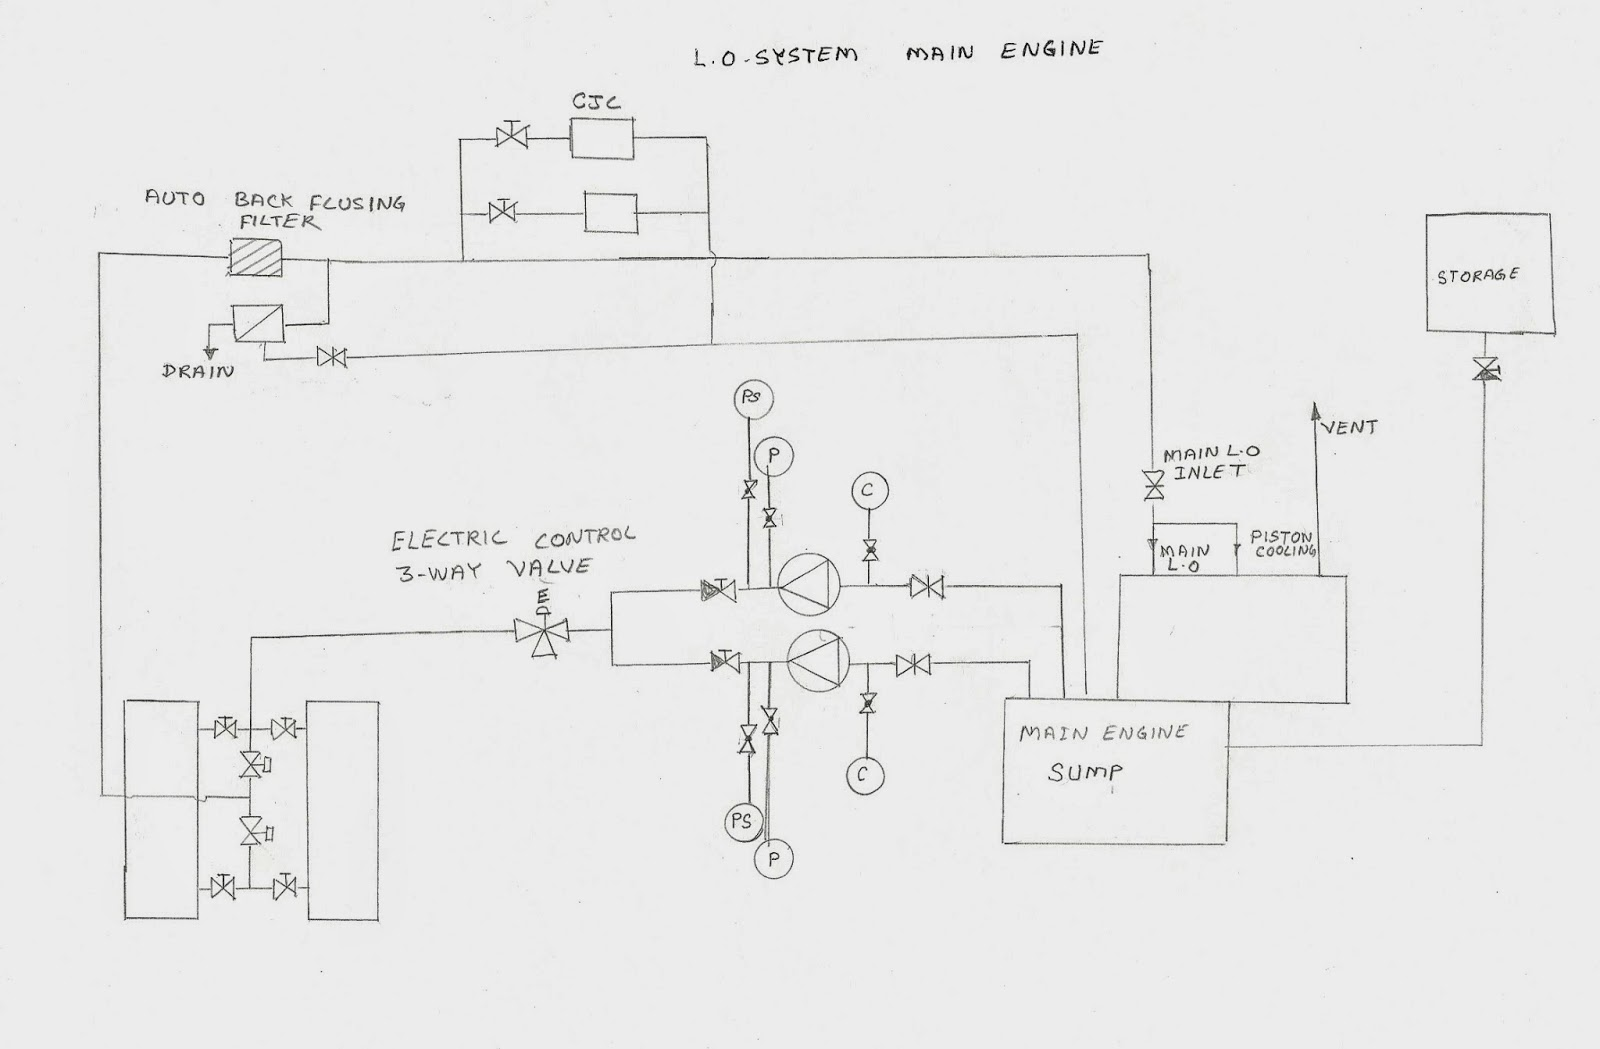 hight resolution of lube oil system main engine